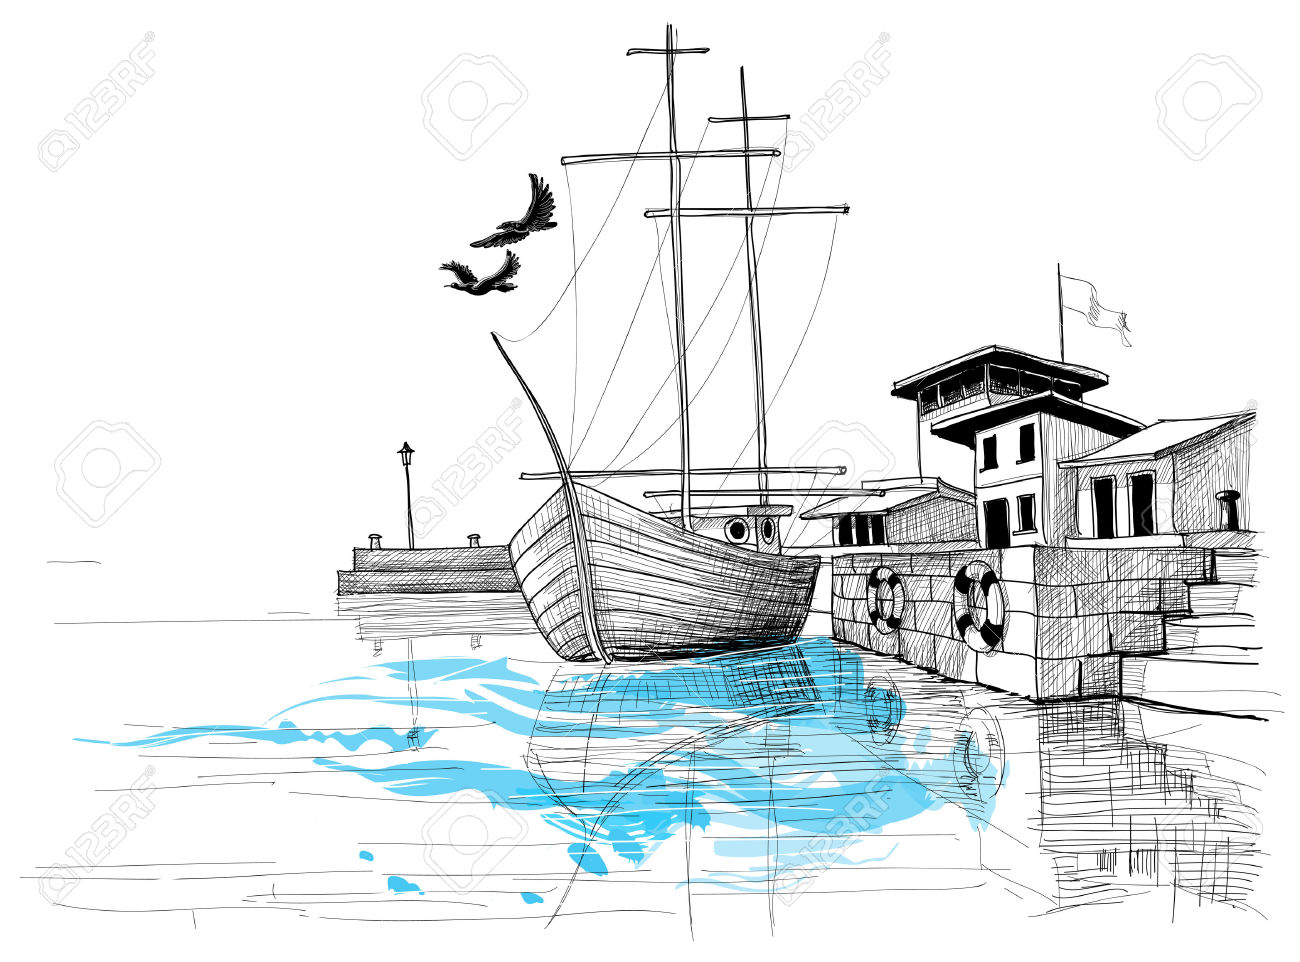 Harbor Sketch, Boat On Shore Illustration Royalty Free Cliparts.